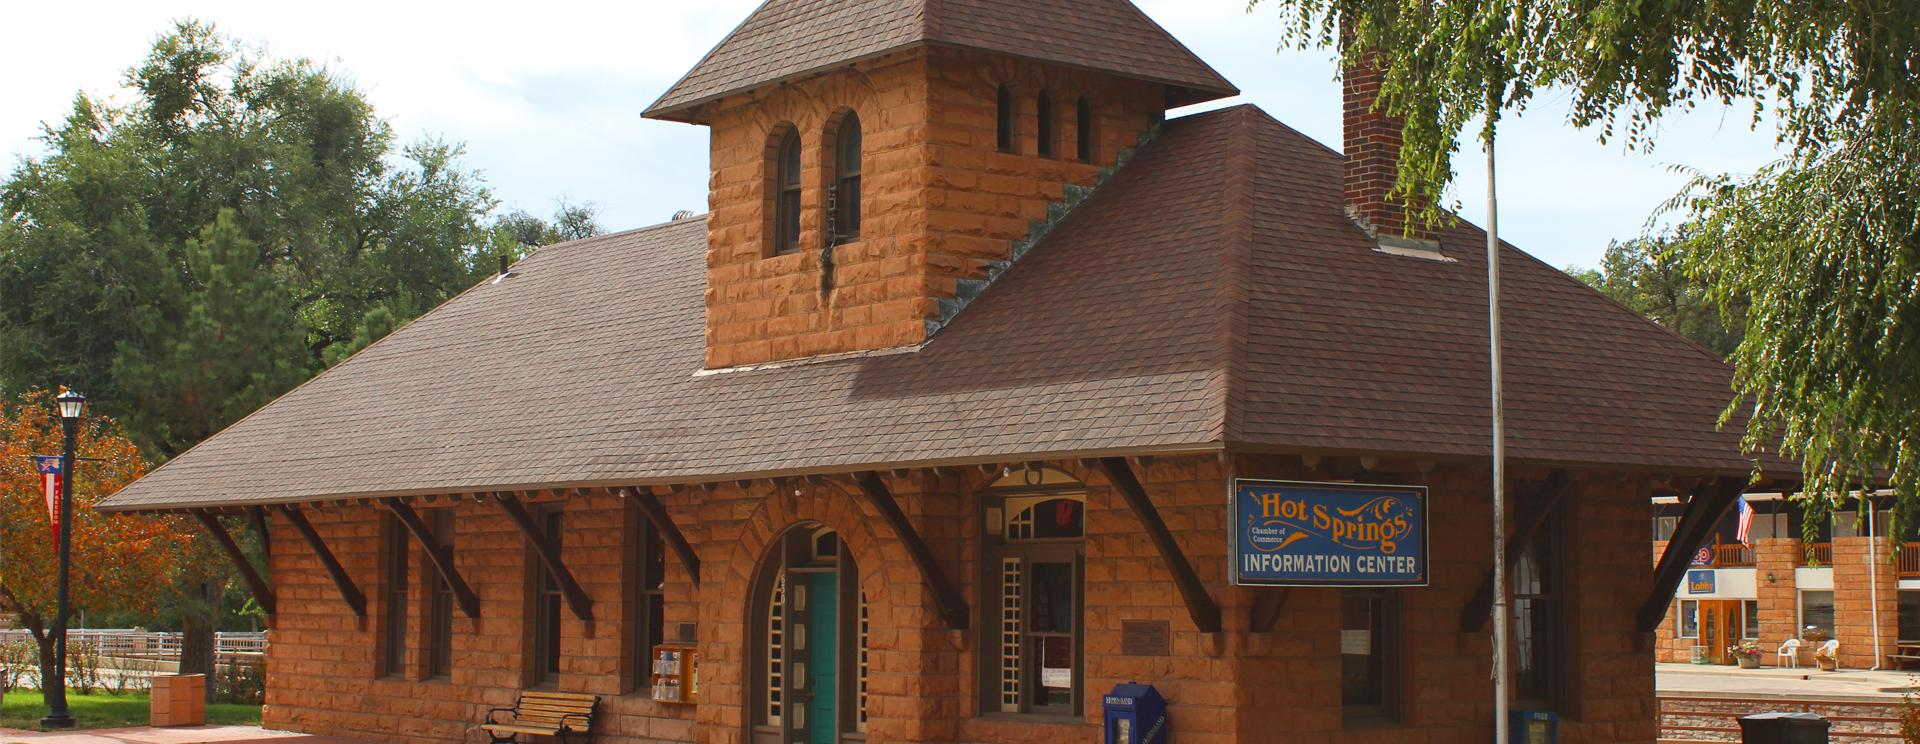 Hot Springs Area Chamber of Commerce